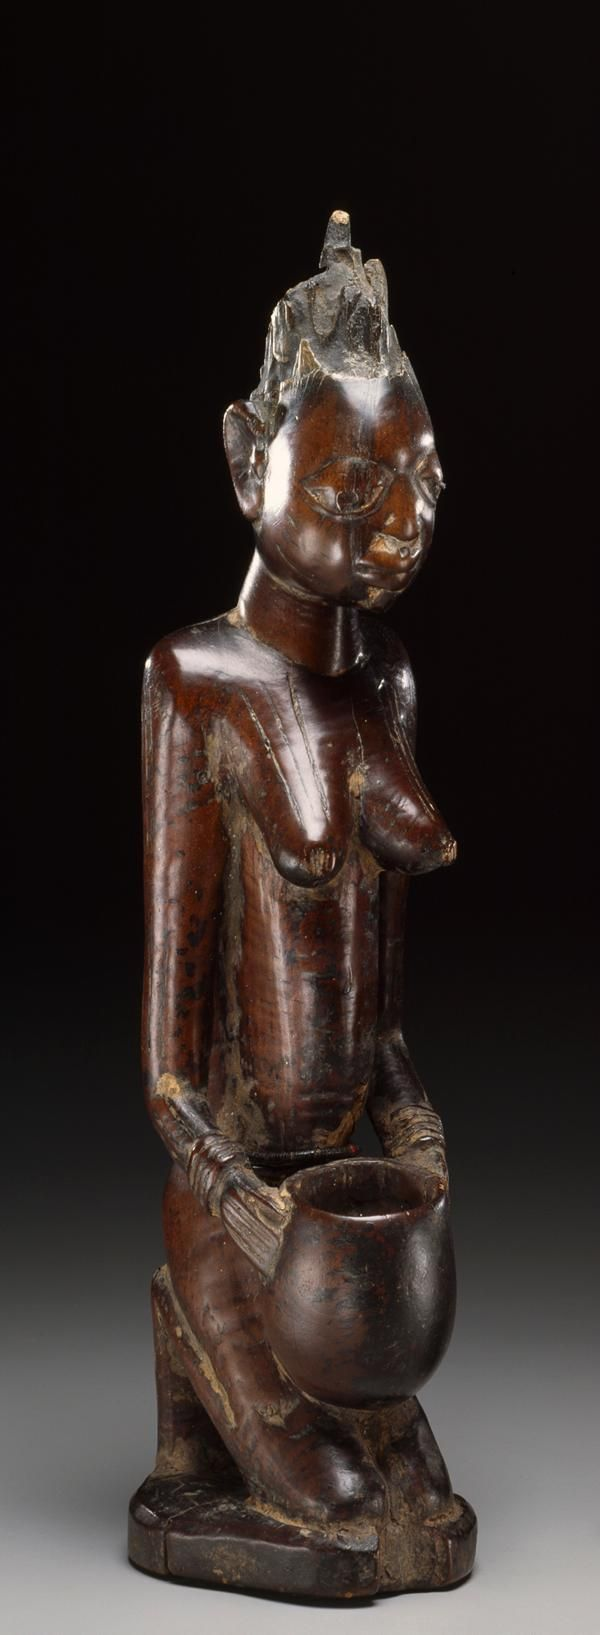 Yoruba Female Bowl Bearing Figure Nigeria Nigeria